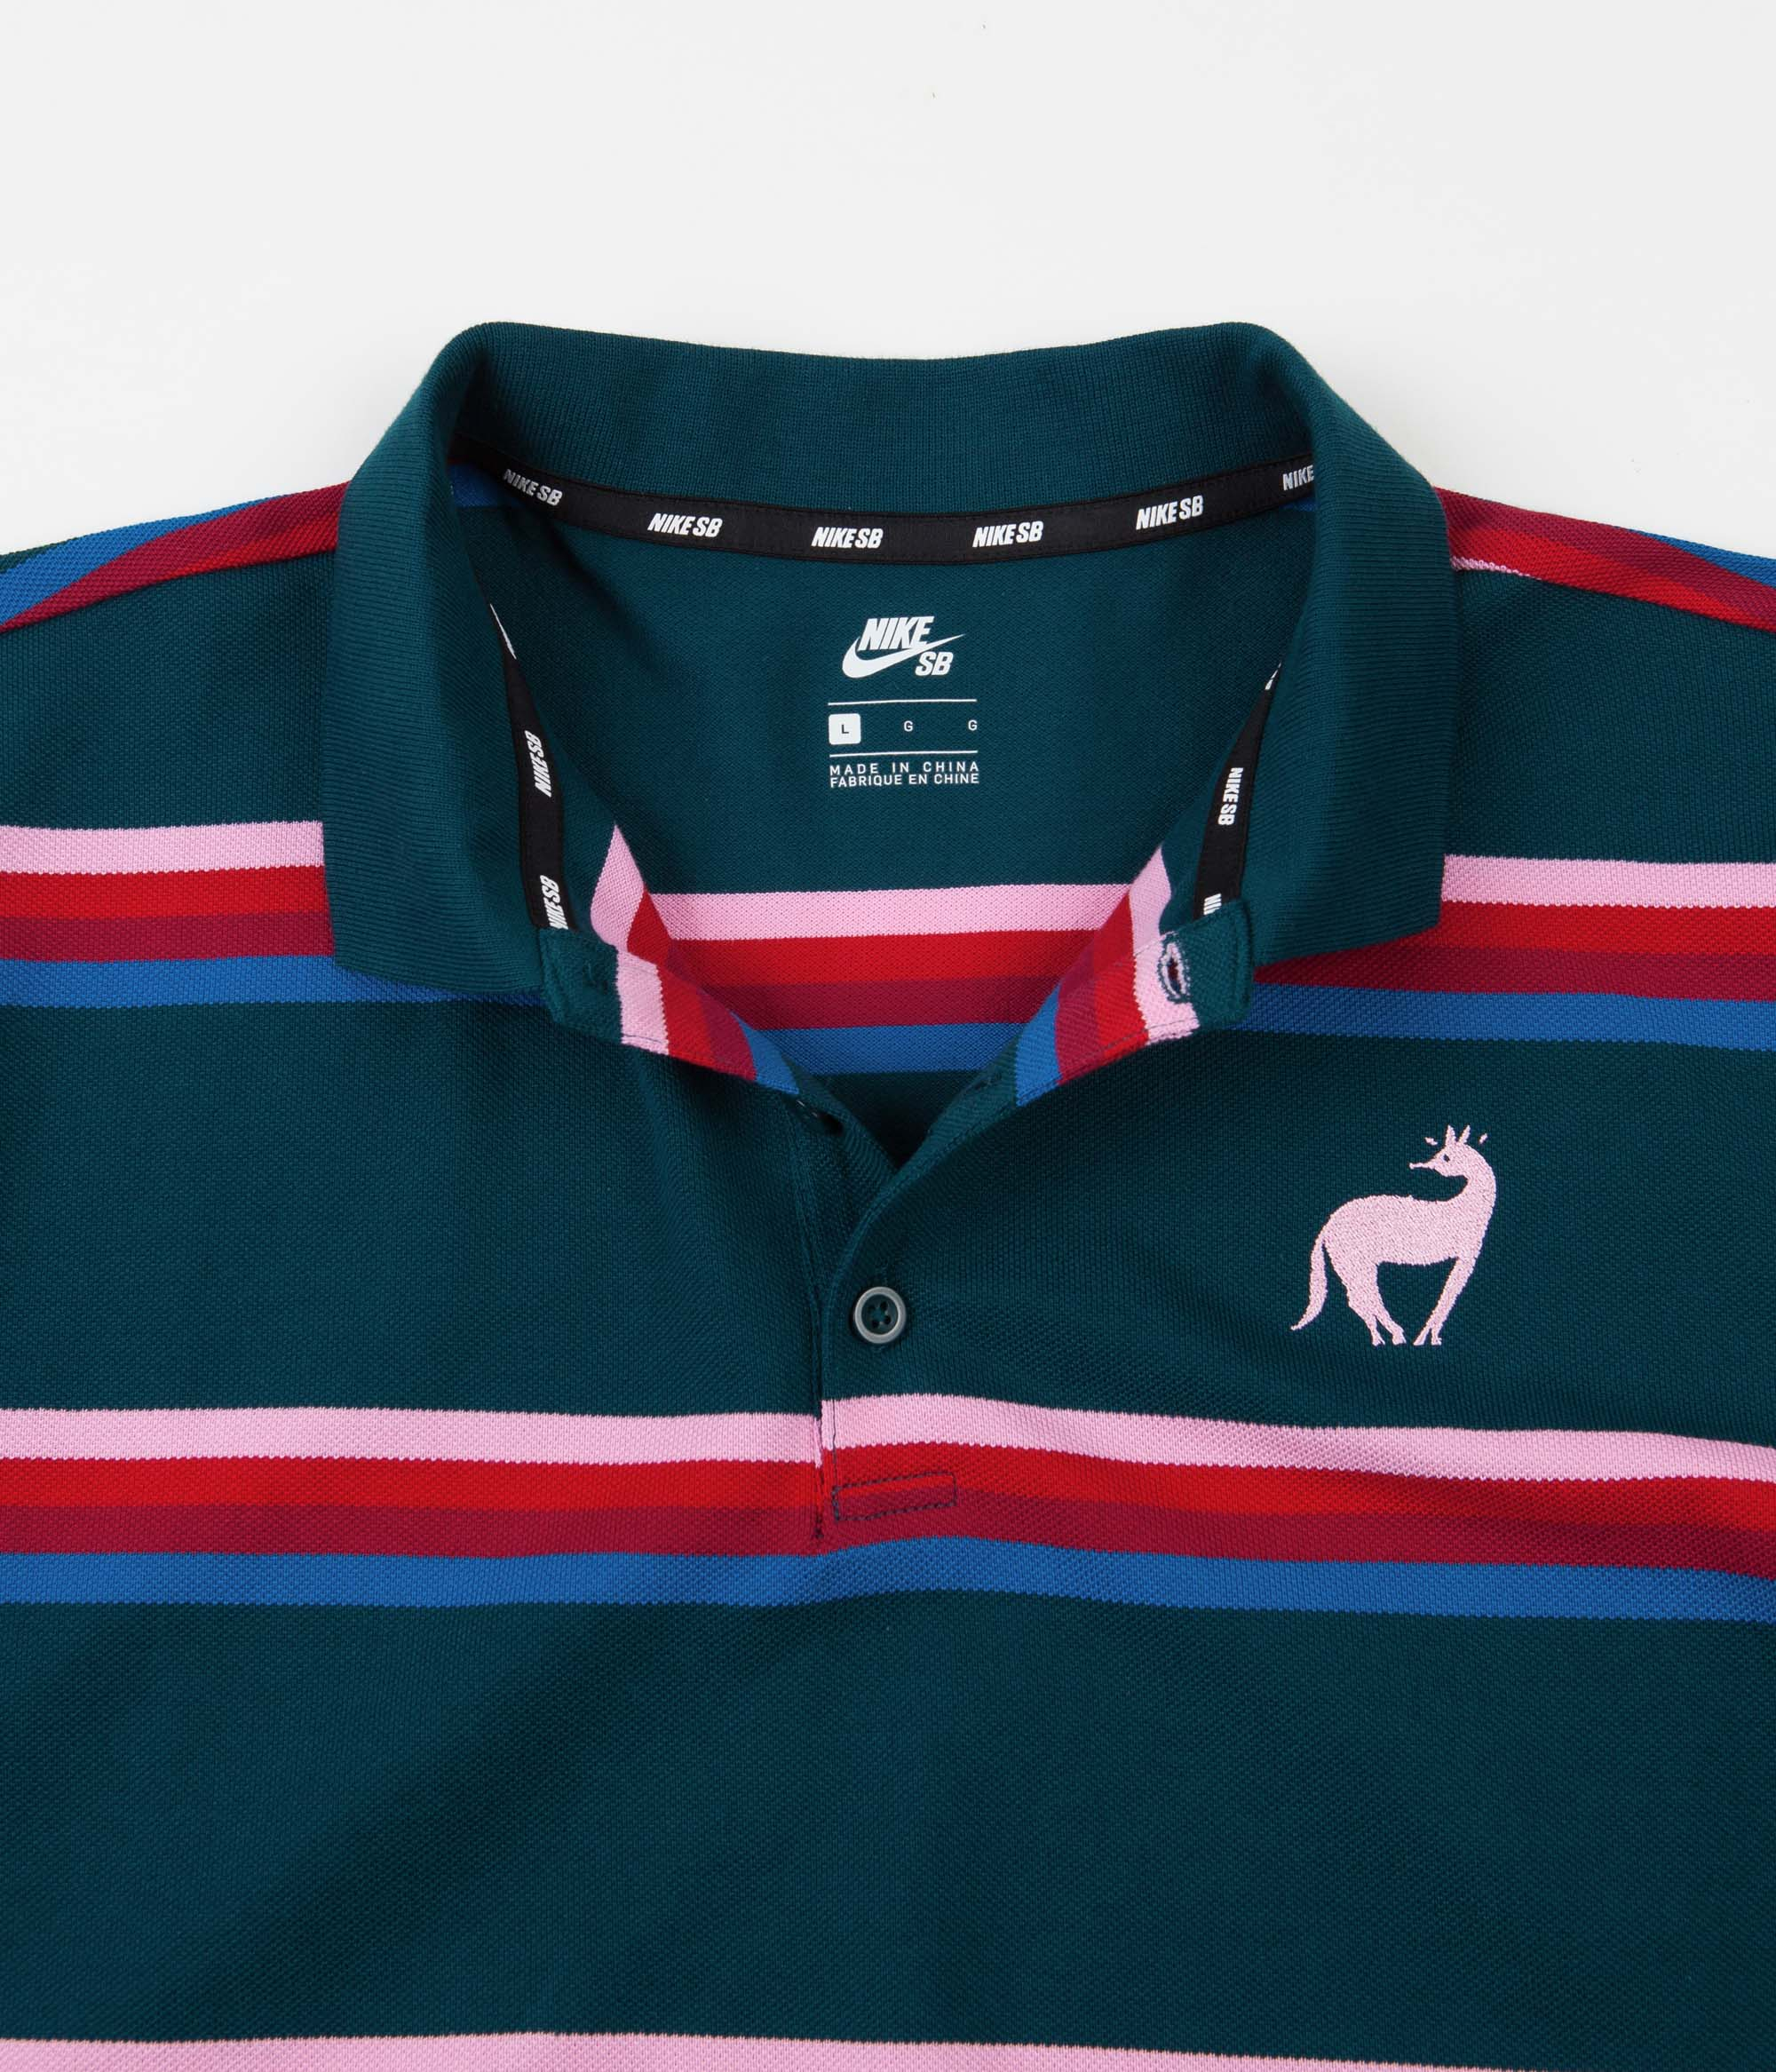 Oficial cheque Rana  Nike SB x Parra Polo Shirt - Midnight Turquoise / Military Blue / Pink |  Flatspot